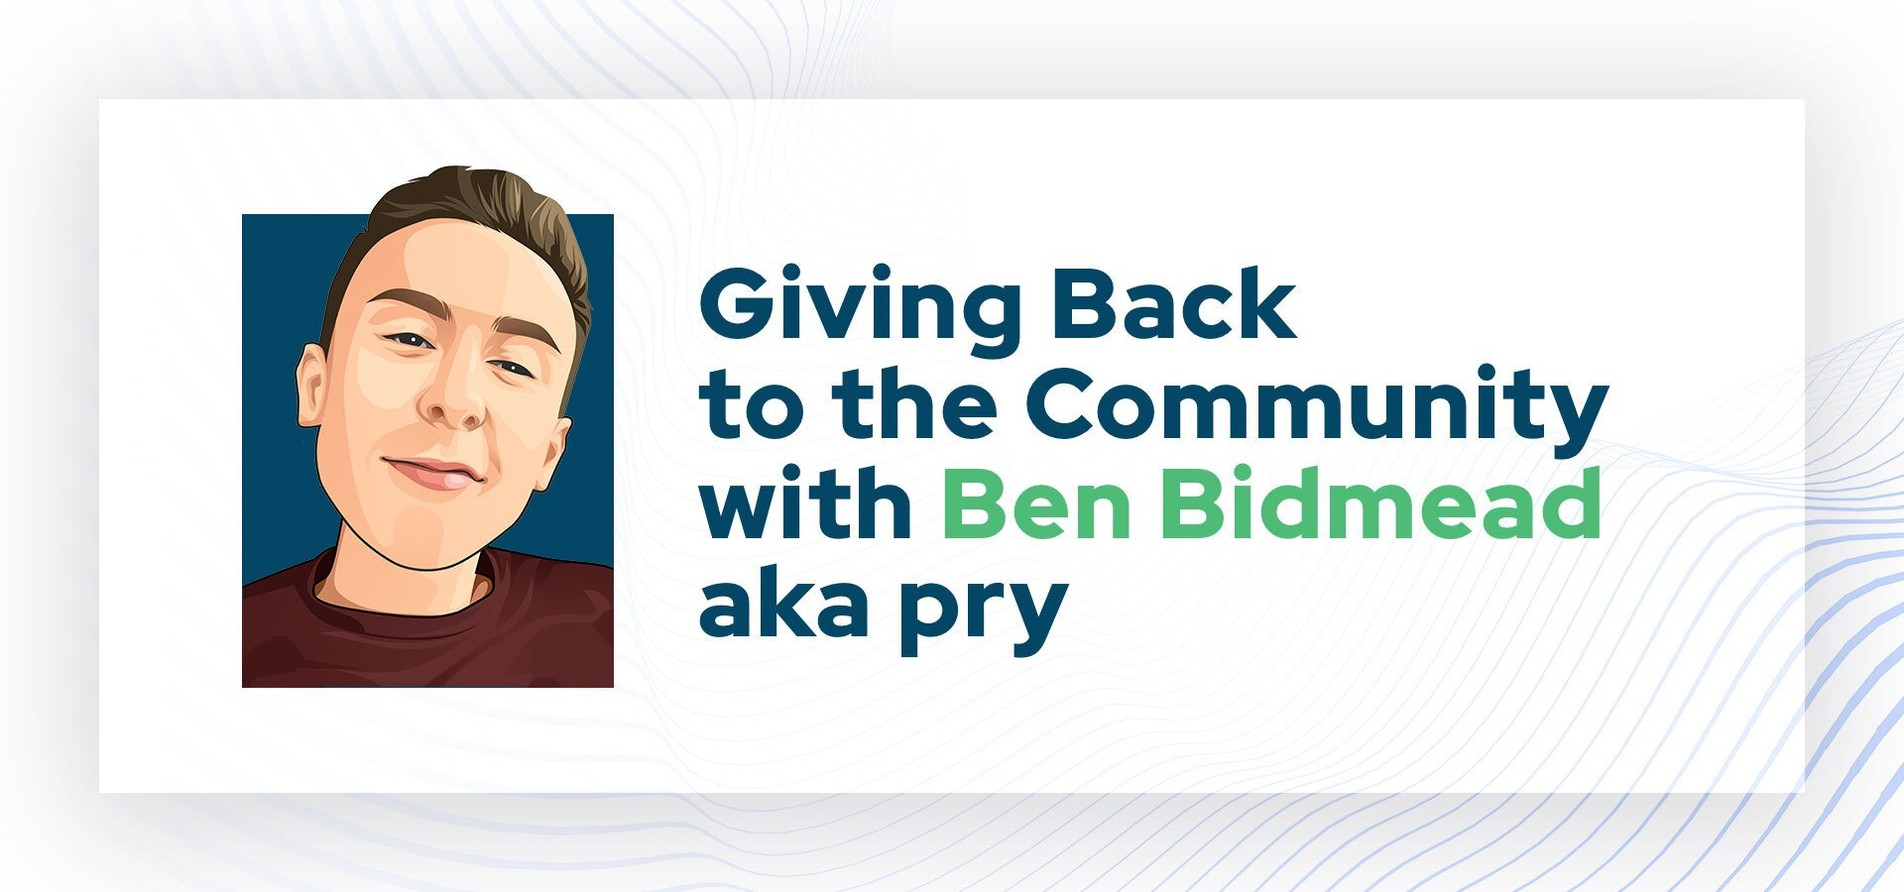 Giving Back to the Community with Ben Bidmead aka pry.